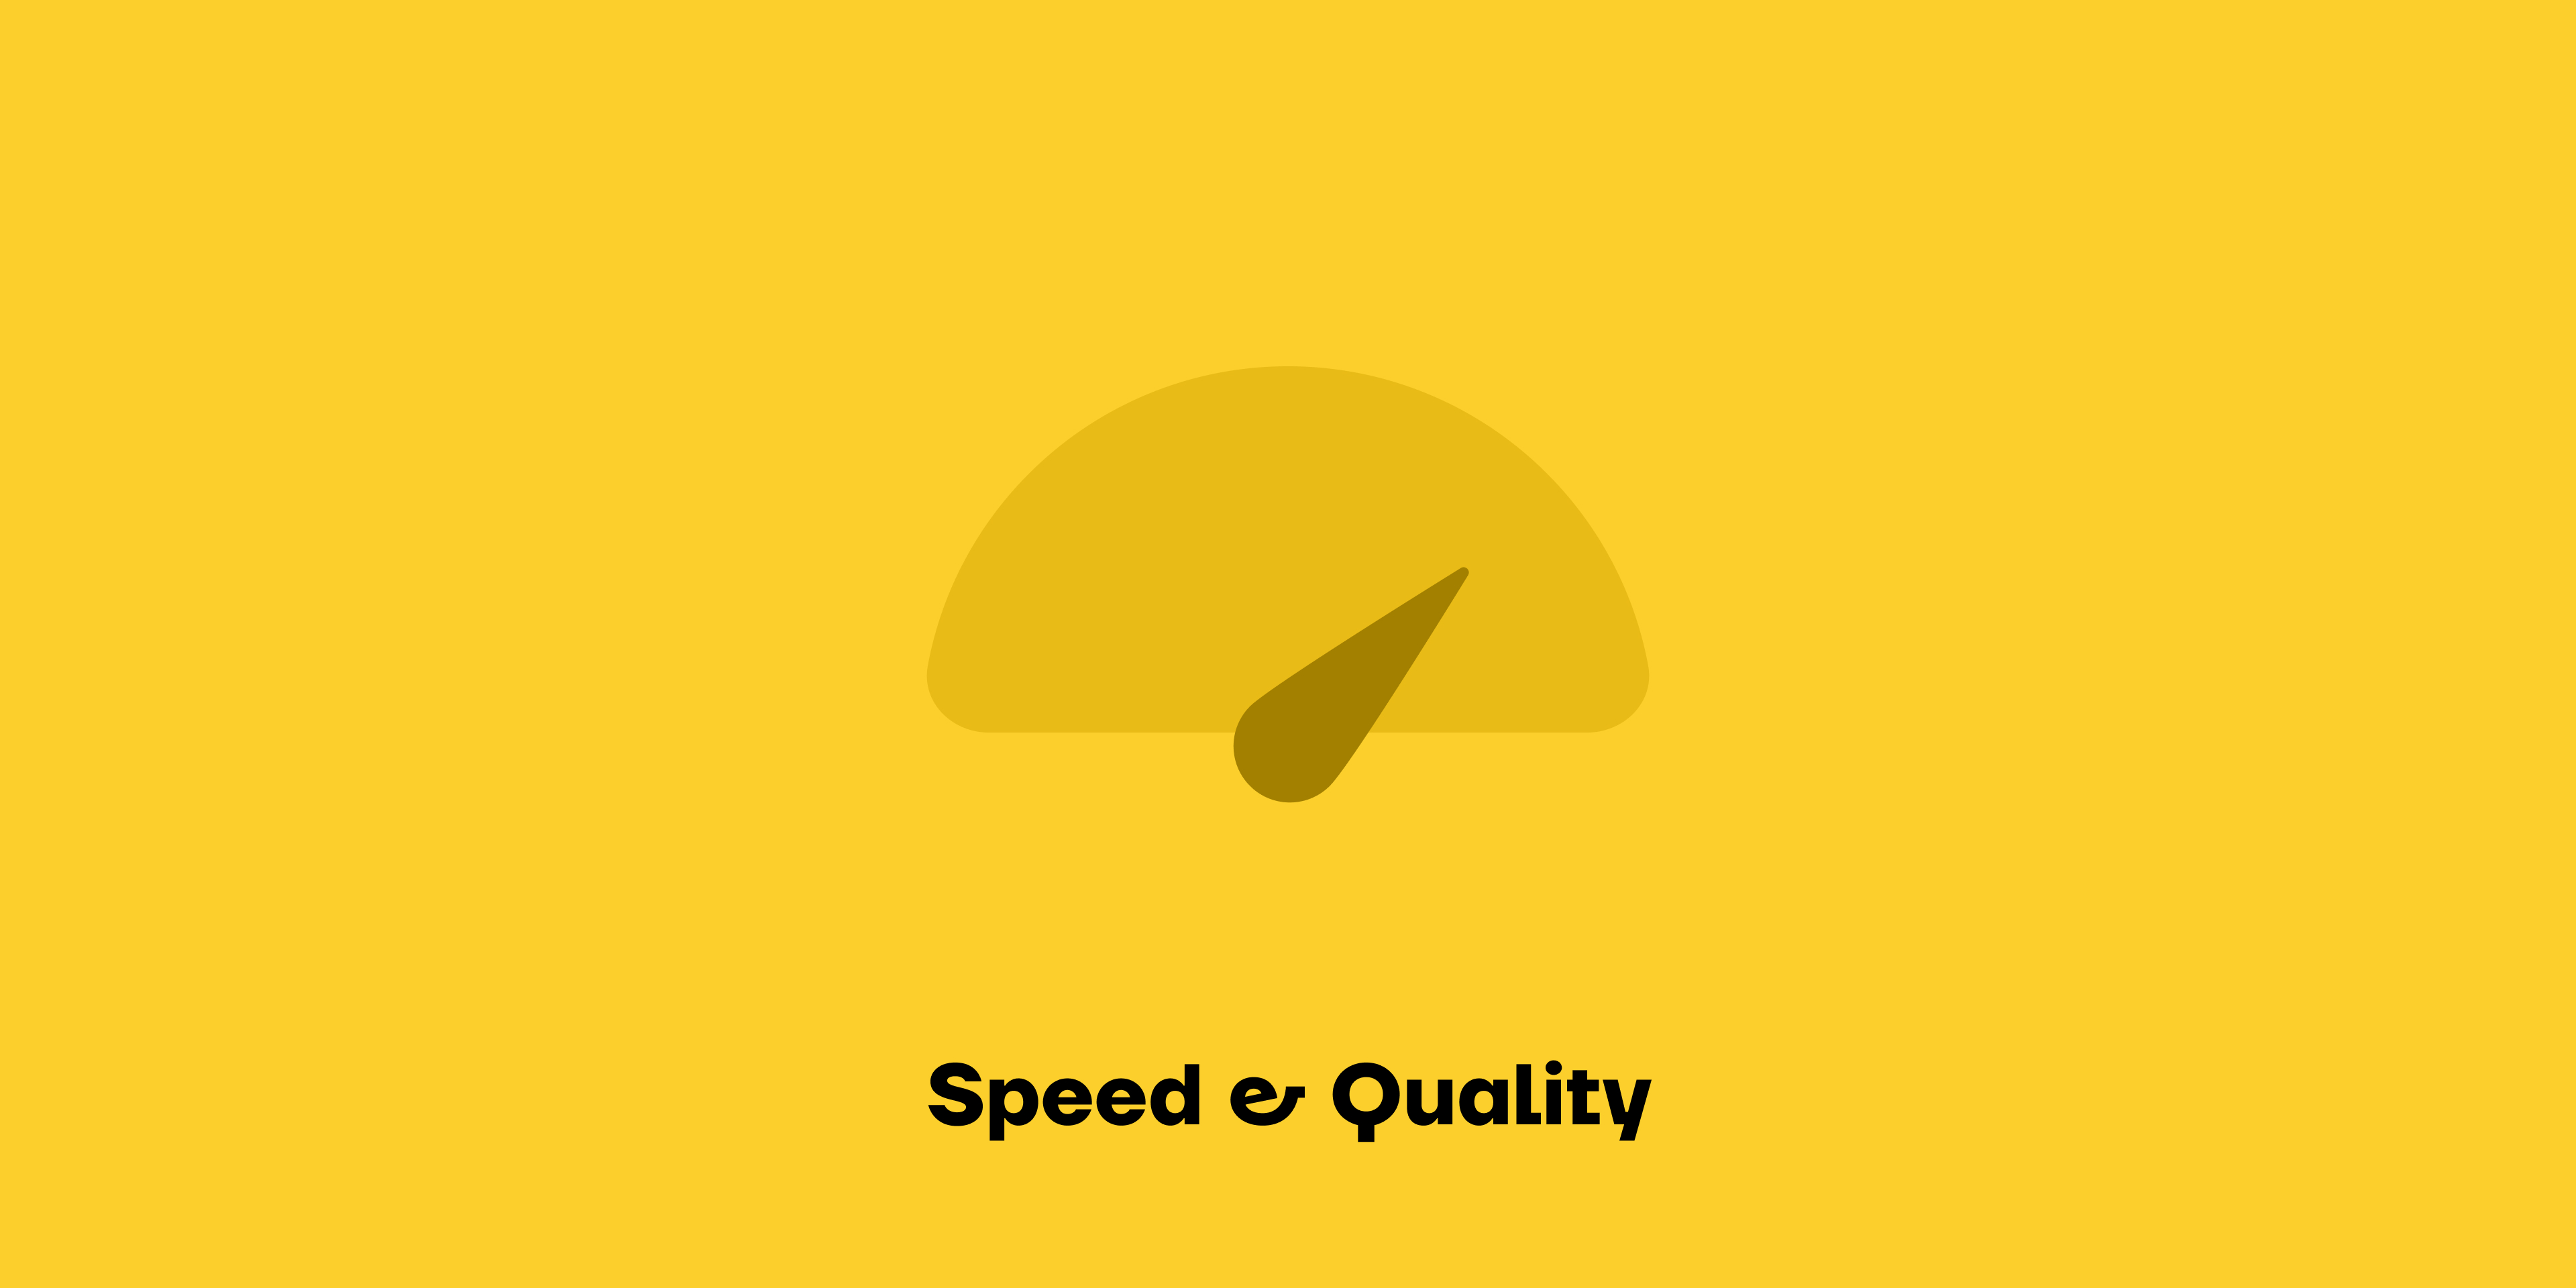 Design System Benefits: Speed & Quality